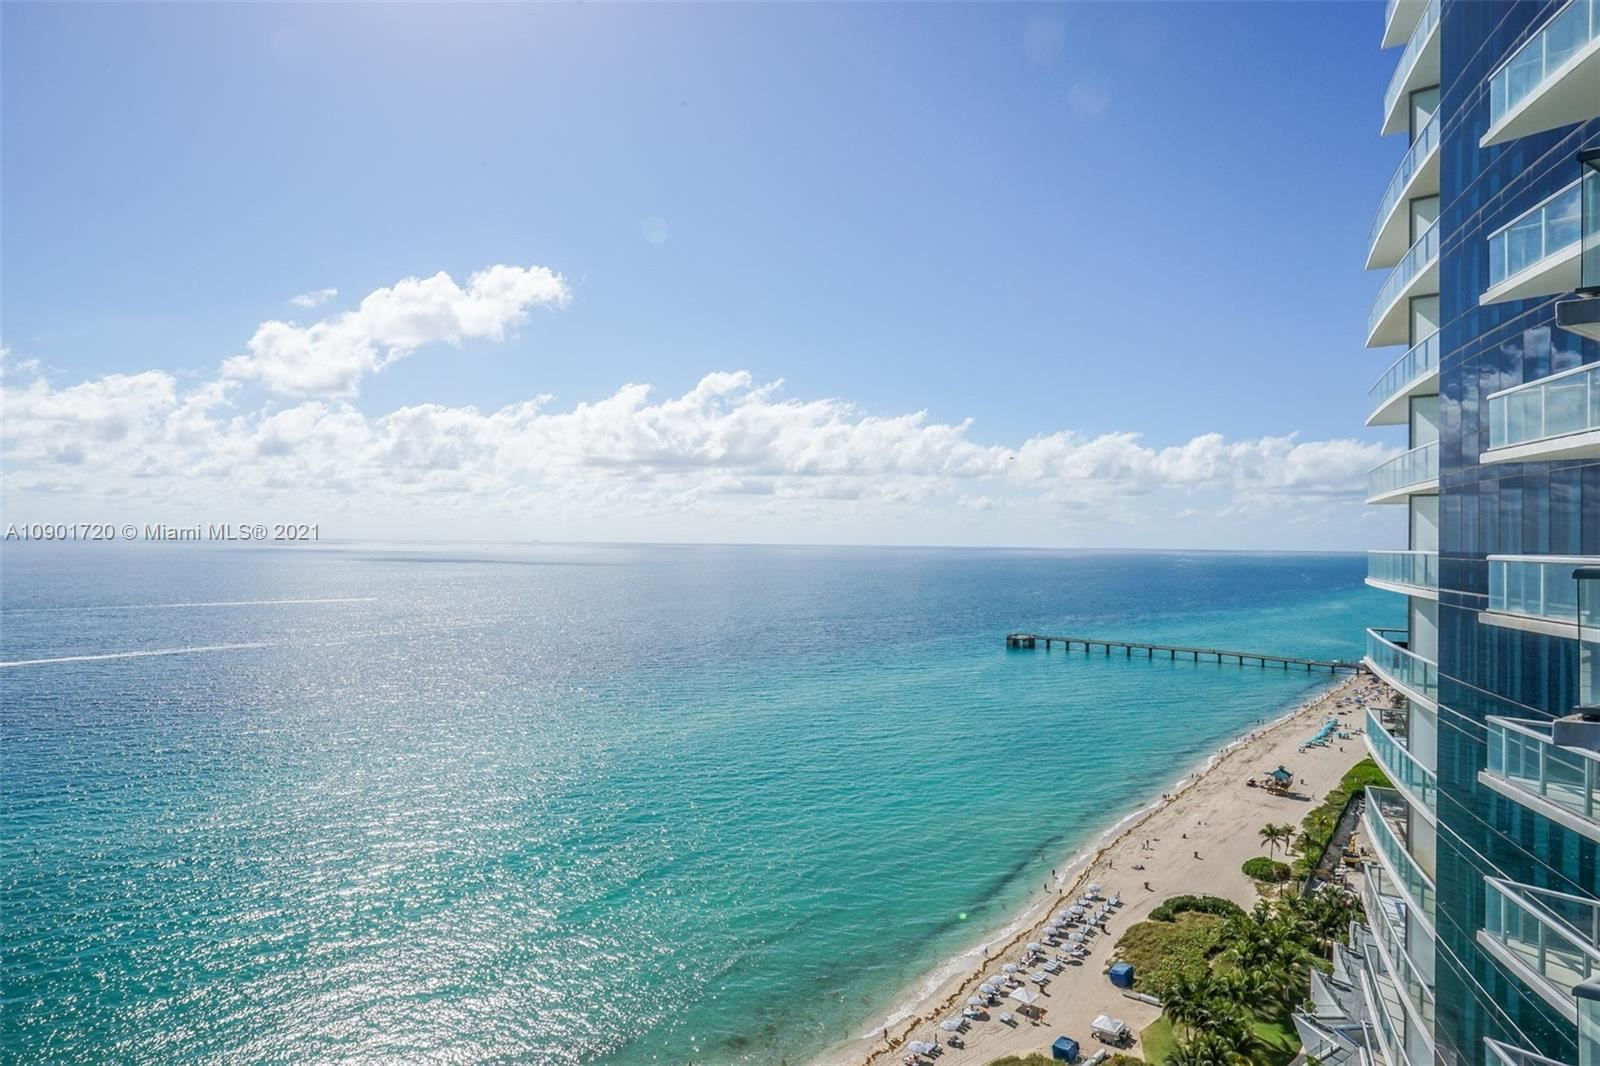 17121 Collins Ave #2206, Sunny Isles, FL 33160 - #: A10901720